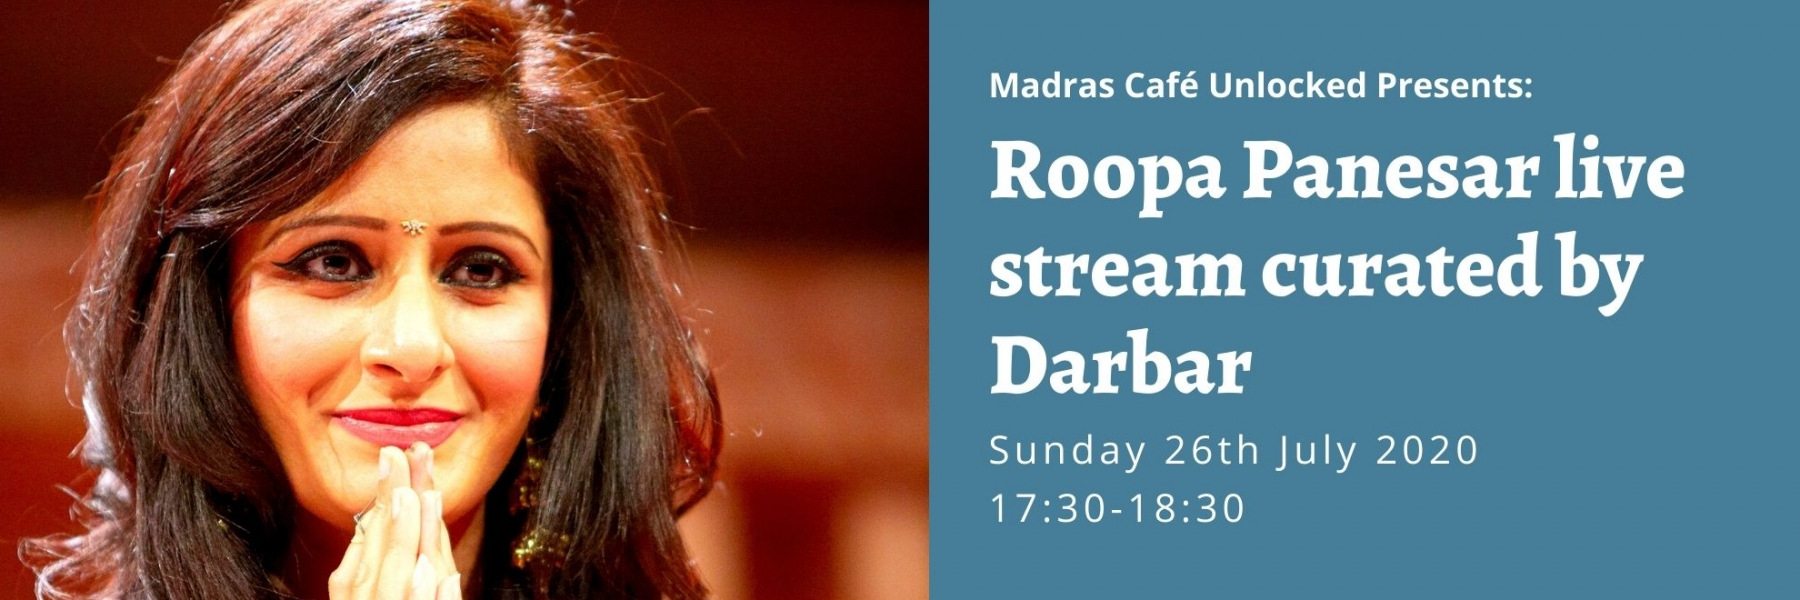 Madras Cafe Unlocked 2020: Roopa Panesar live stream curated by Darbar